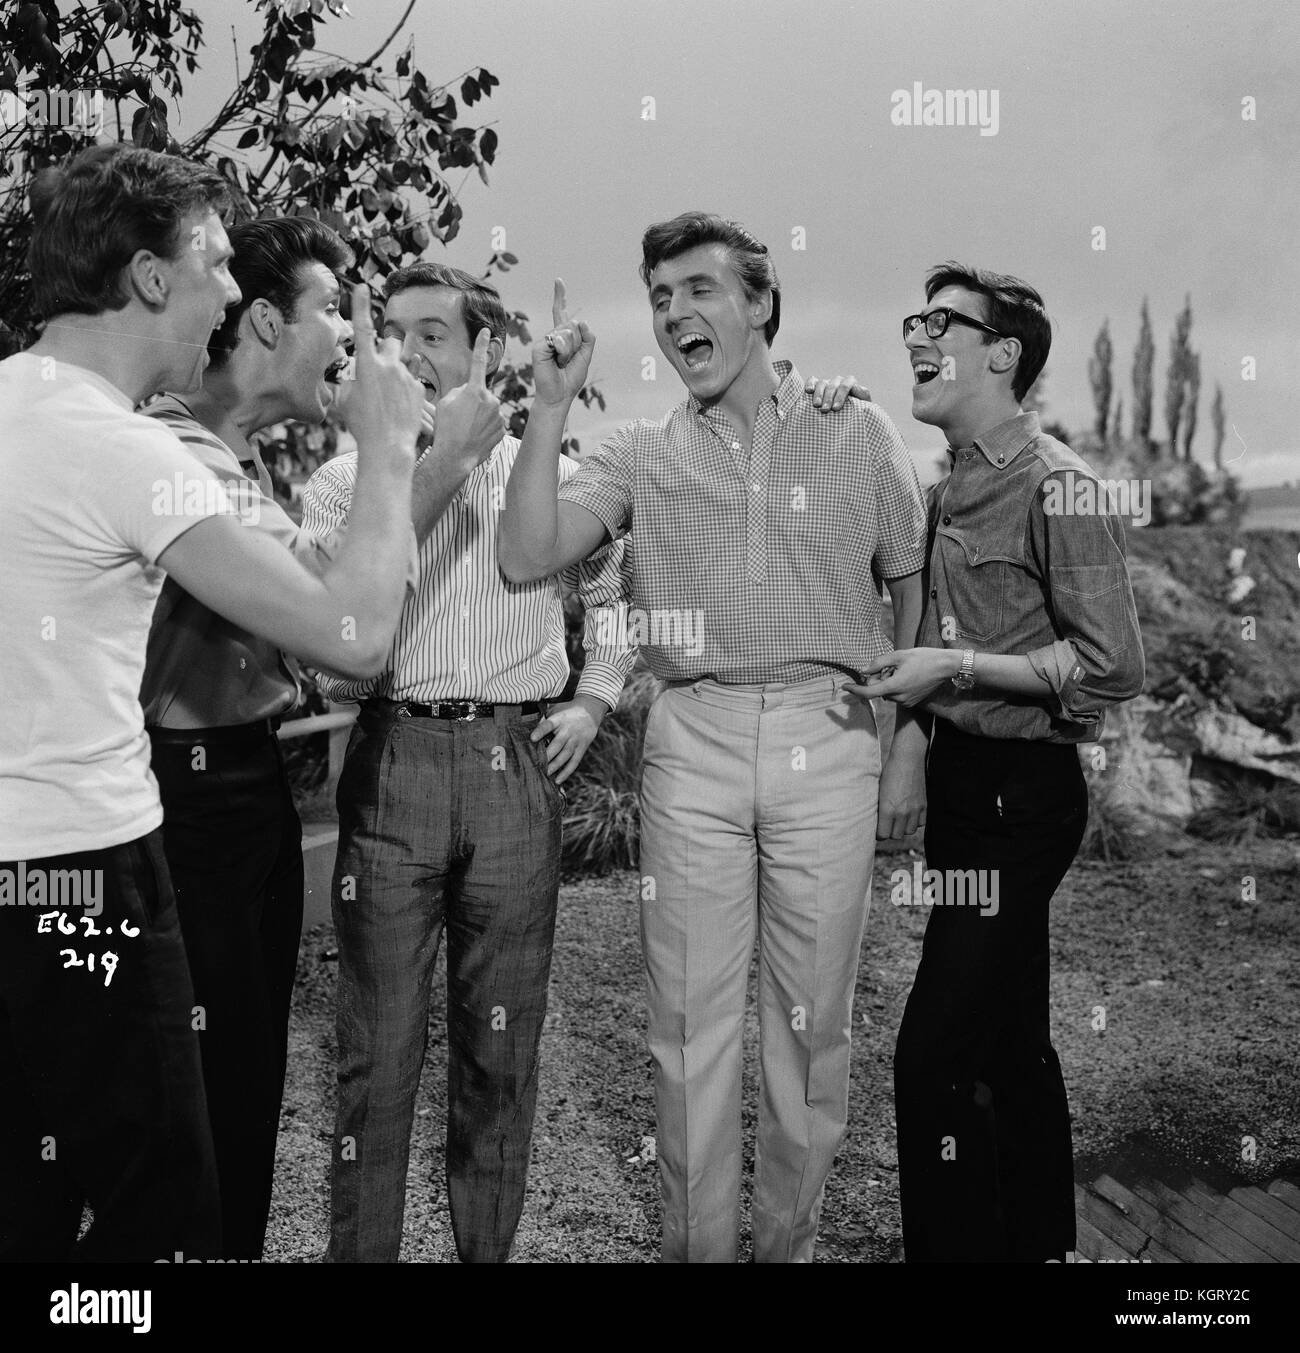 Bruce Welch: Cliff Richard And The Shadows Stock Photos & Cliff Richard